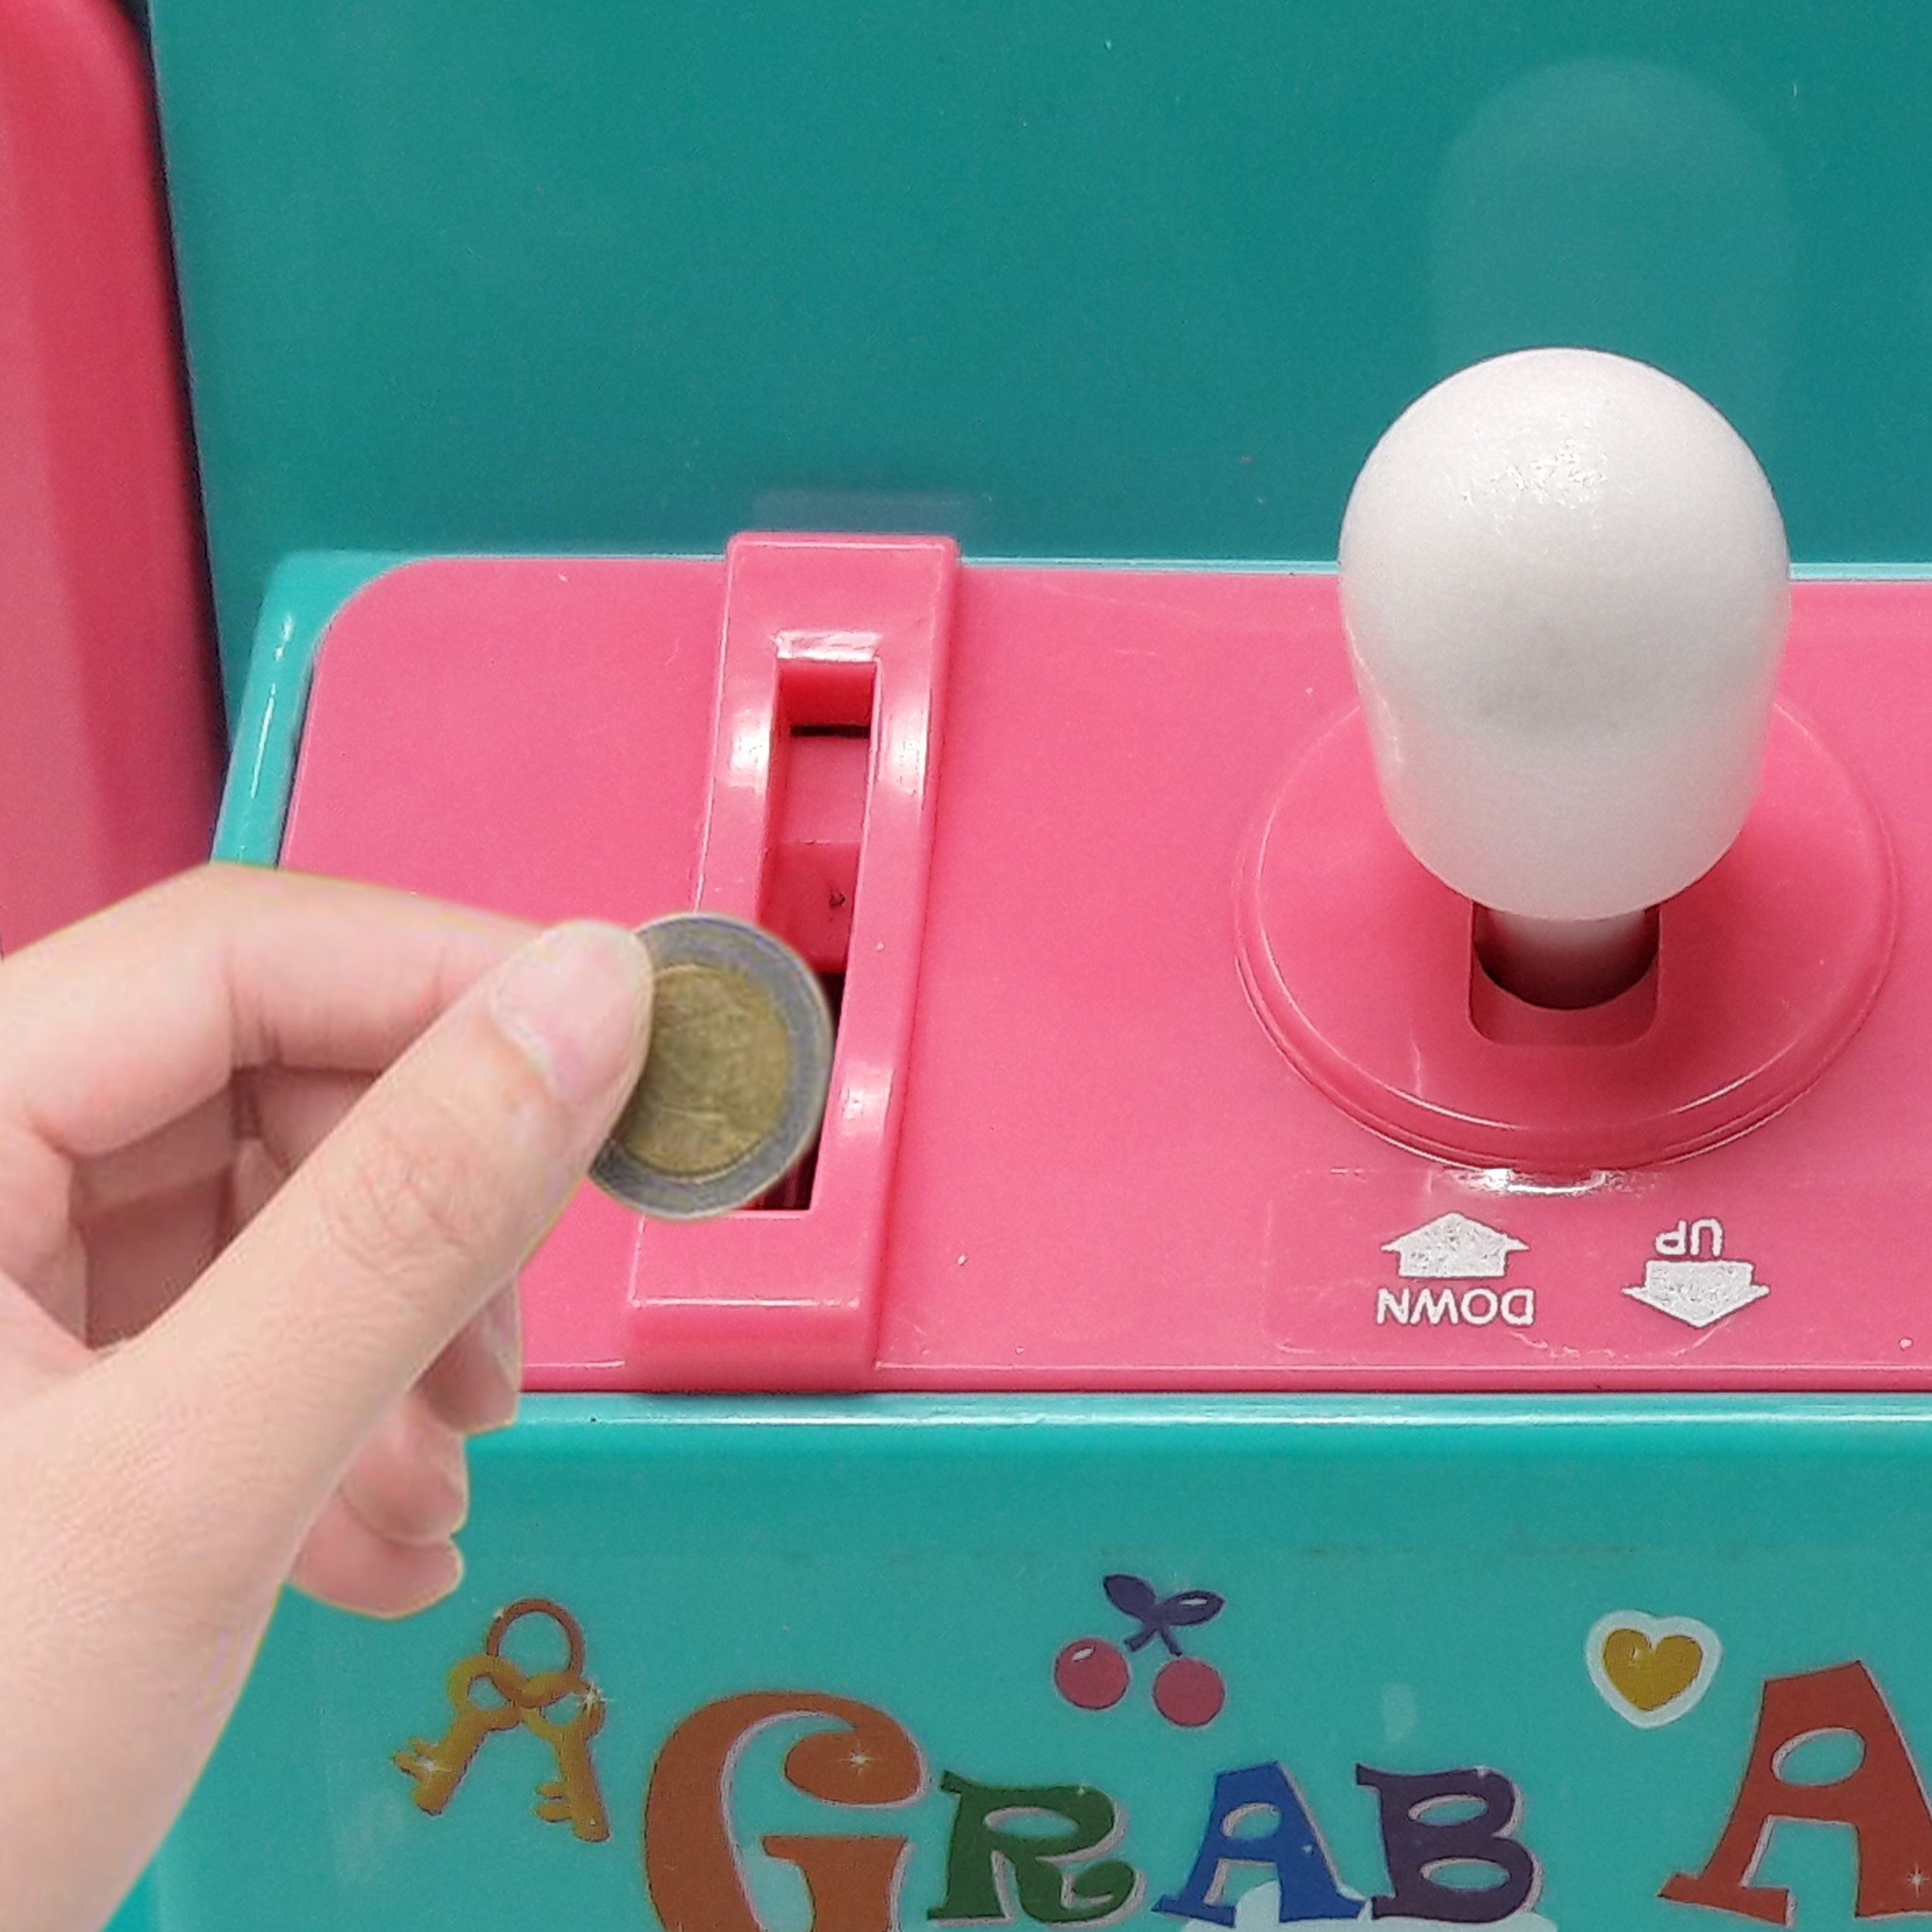 Claw Home Arcade Game Prize Grabber Carnival LED Lights Animation Adjustable Sounds USB Port Cable with 10 Plush Toys and 12 Filled Eggs by TSF TOYS (Image #4)